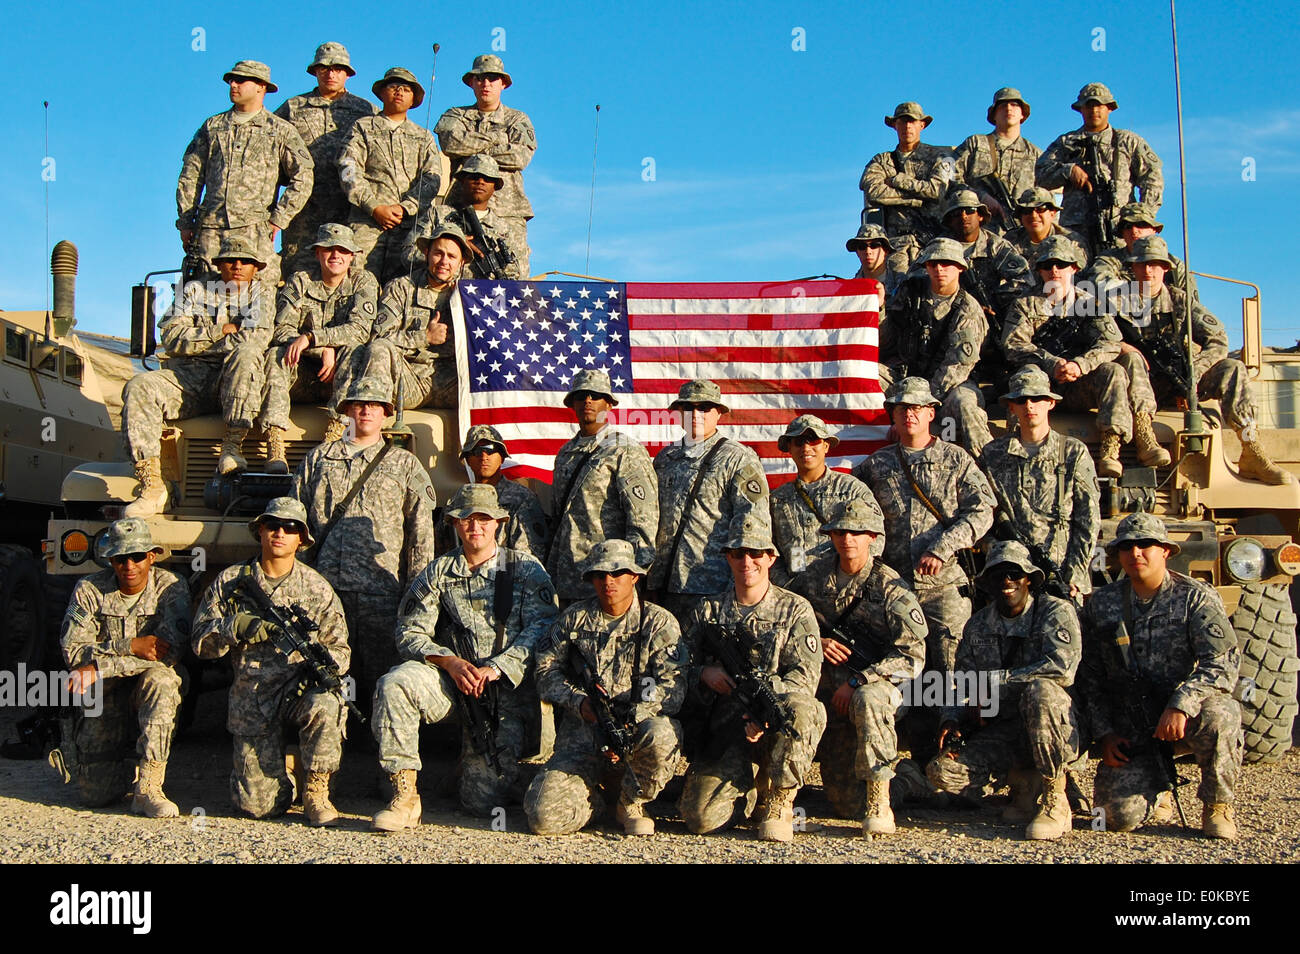 soldiers from platoon 3, company c, 2nd bn., 35th inf. regt., 25th